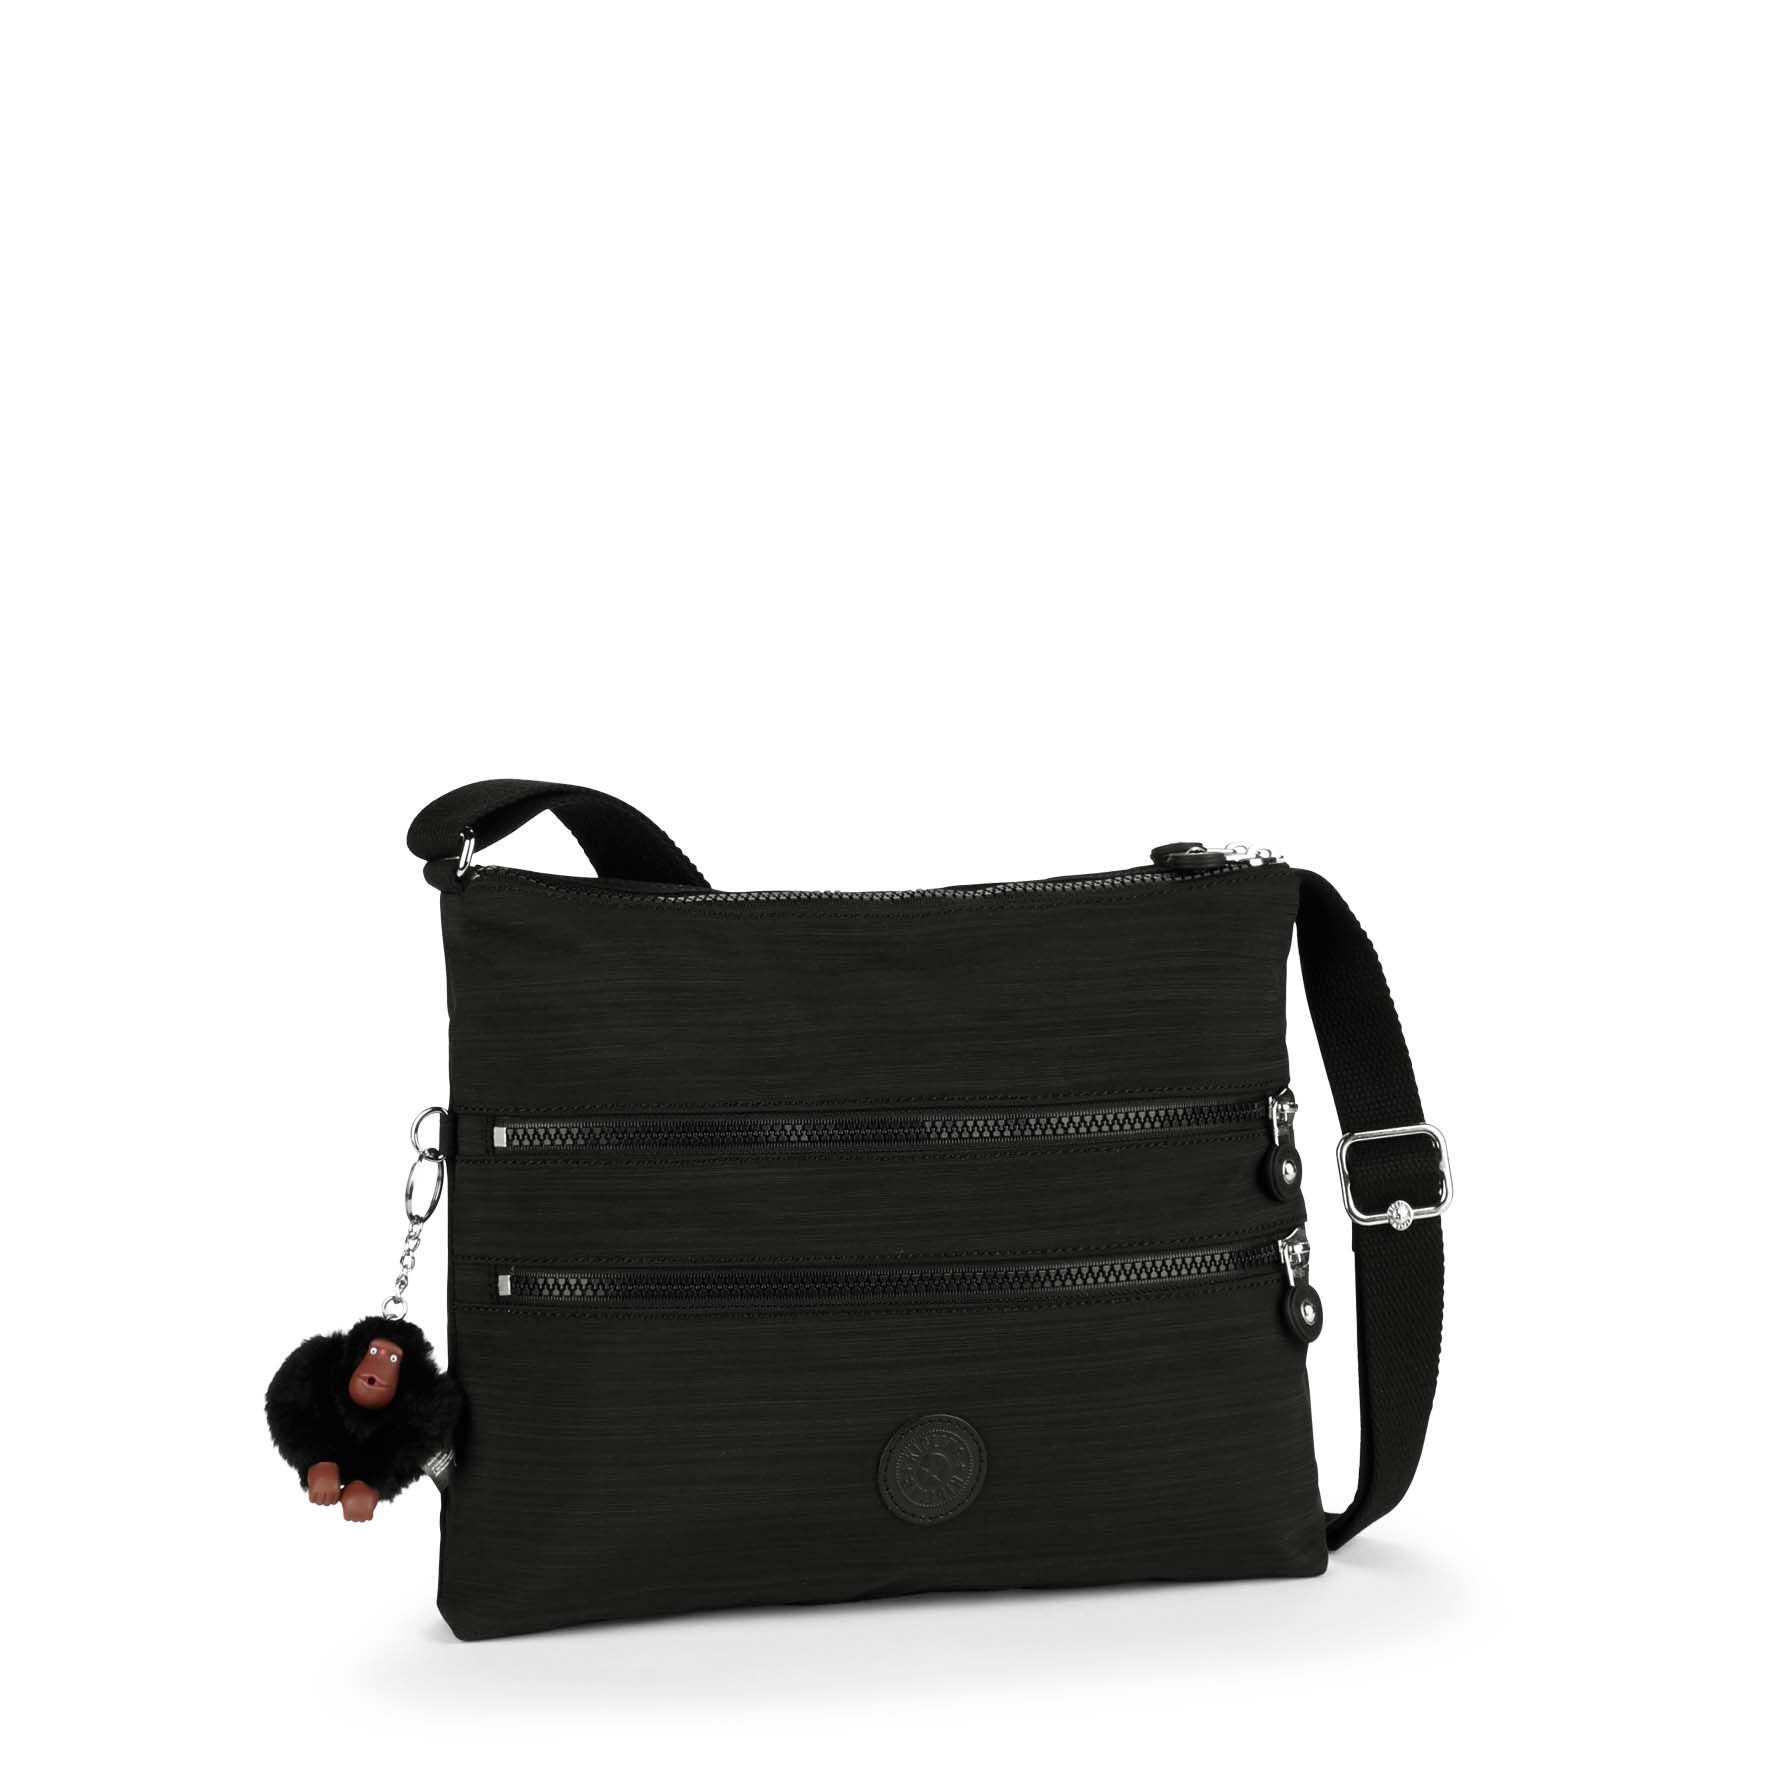 Kipling Alvar shoulder bag Black